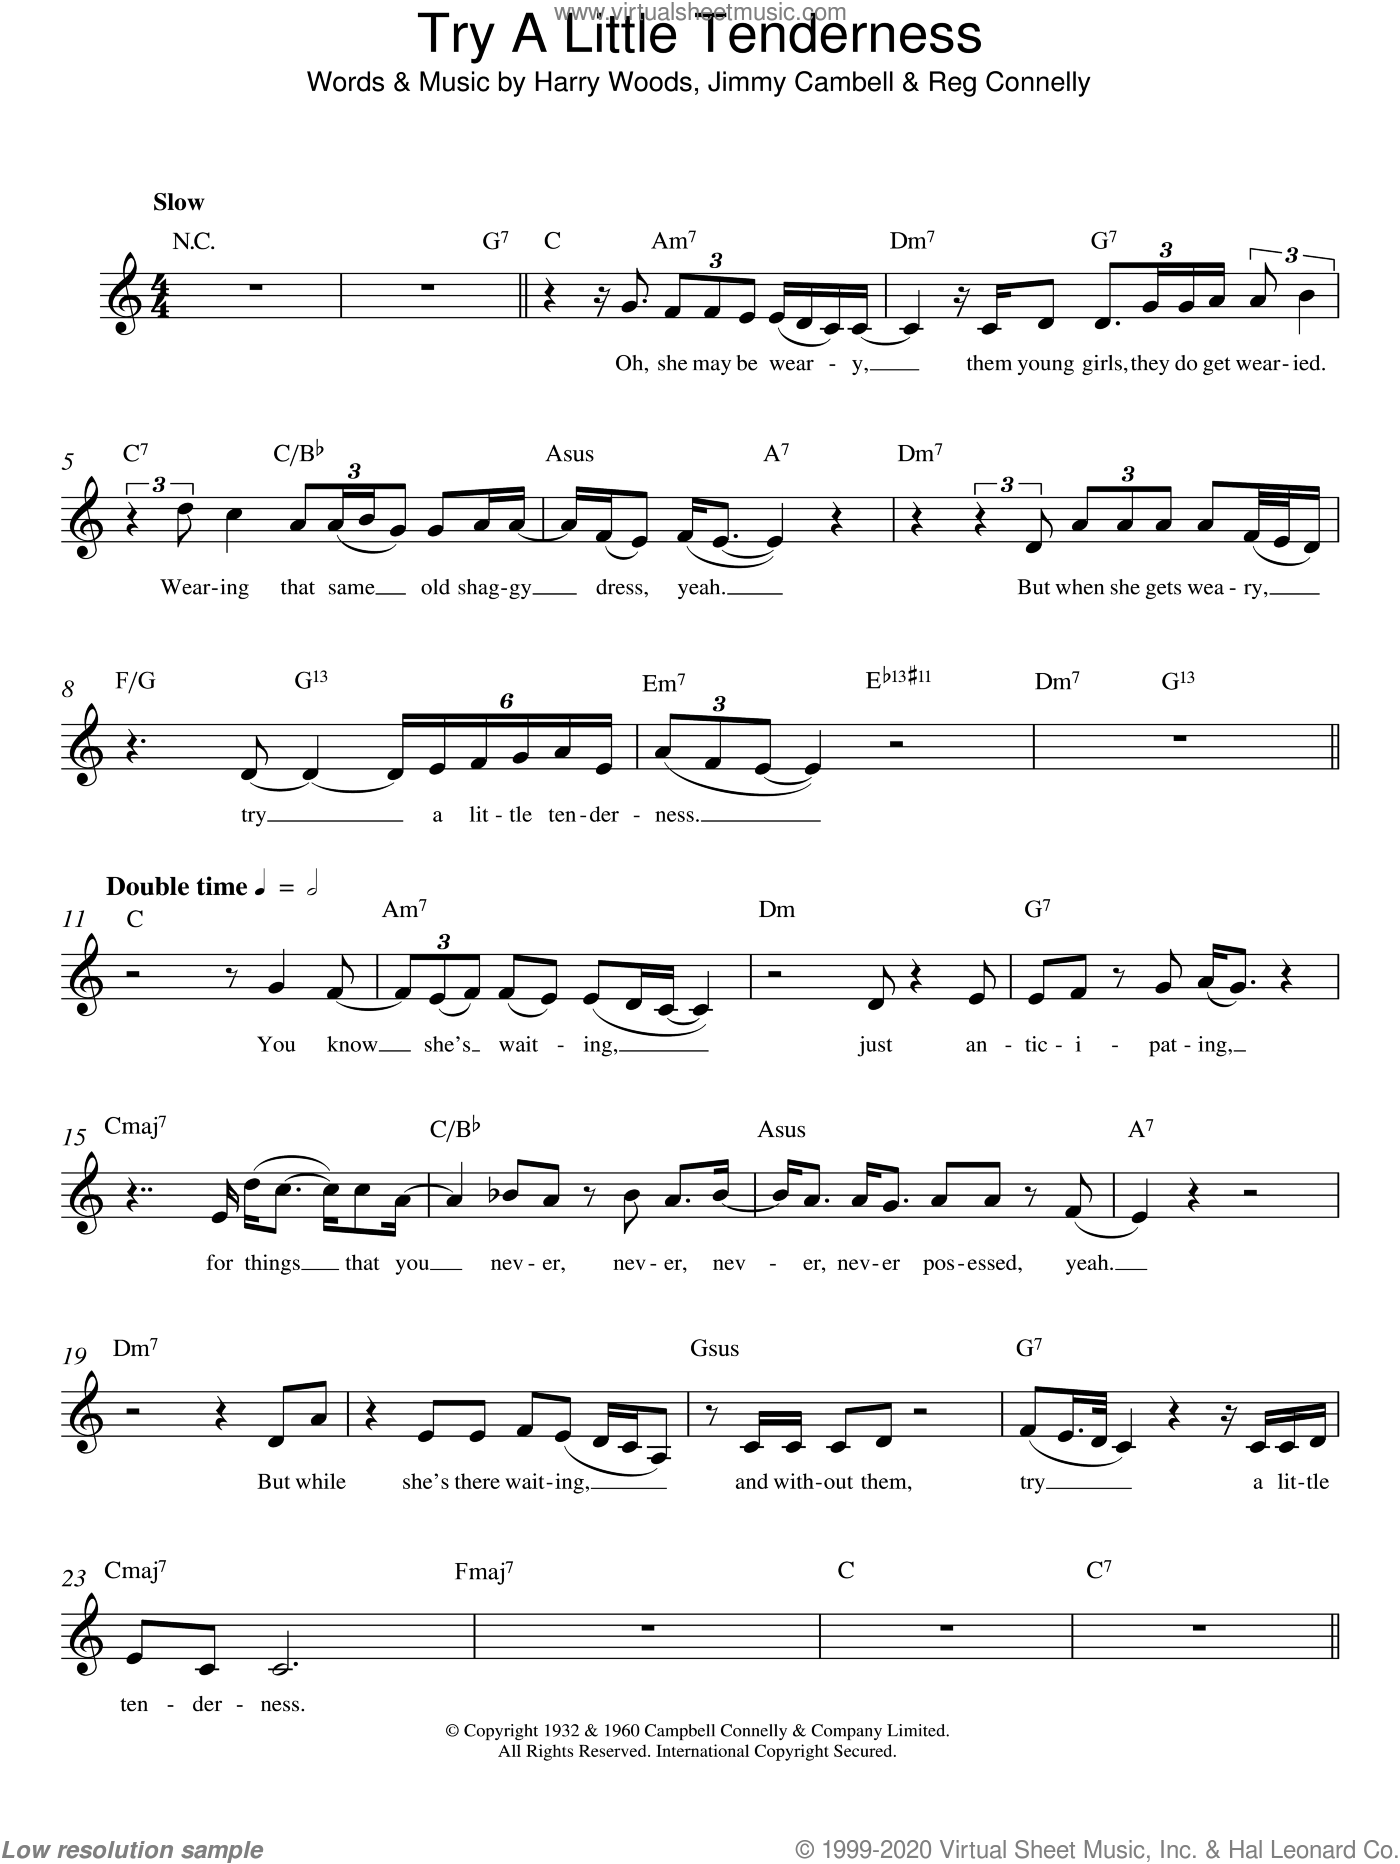 Try A Little Tenderness sheet music for voice and other instruments (fake book) by Otis Redding, Harry Woods, Jimmy Campbell and Reg Connelly, intermediate voice. Score Image Preview.